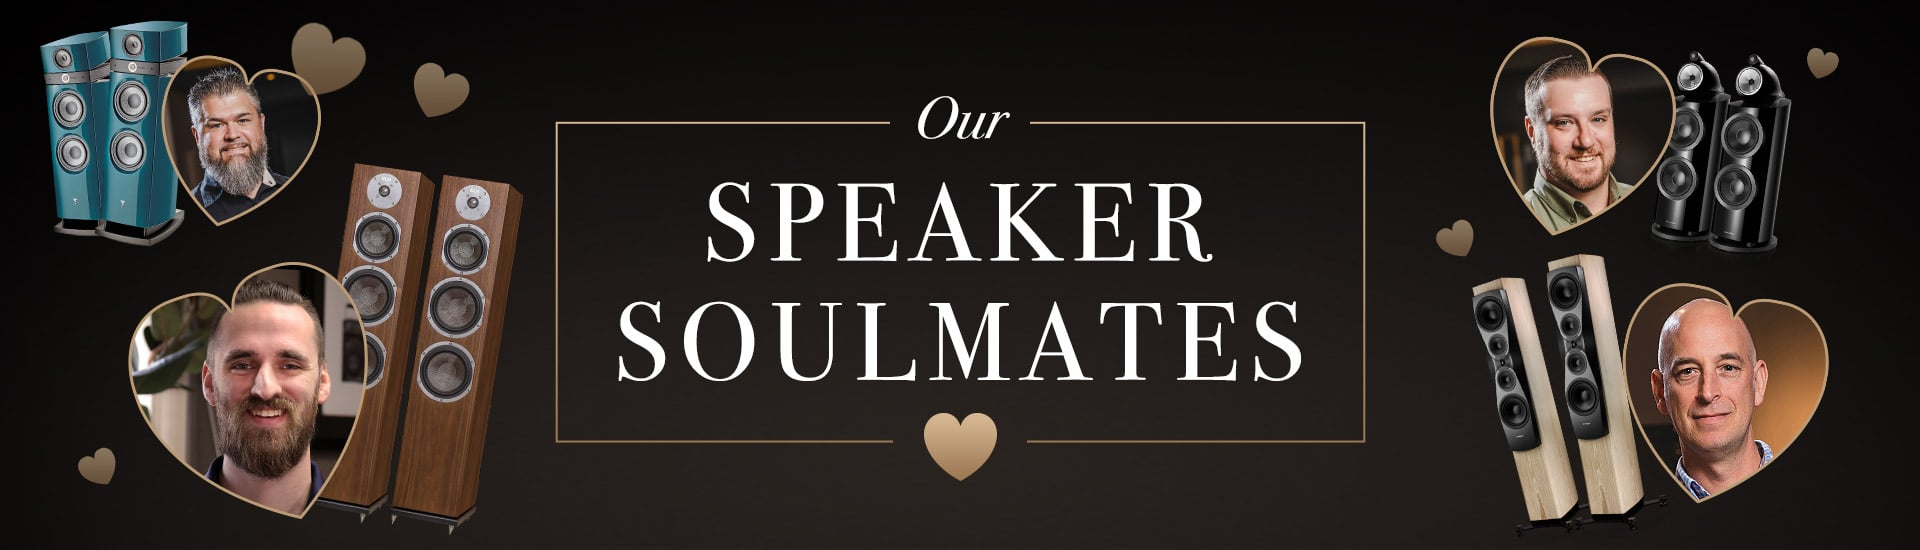 20200121 web speaker soulmate blog header